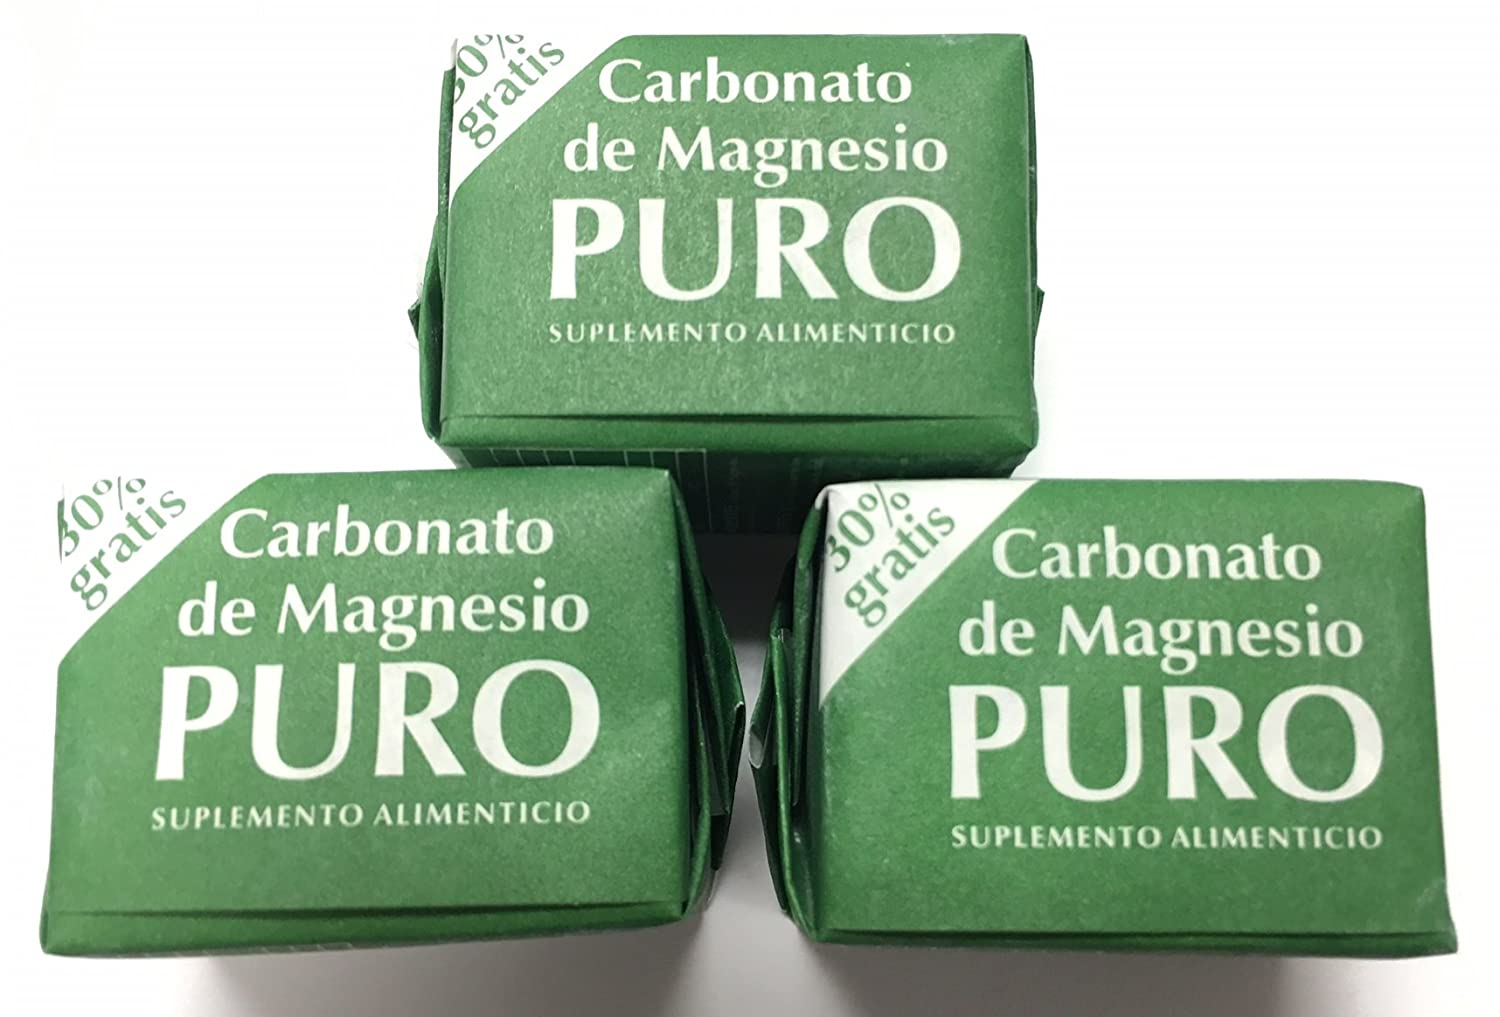 Amazon.com: Magnesium Carbonate 7grs - Carbonato de Magnesio Puro (Pack of 2): Health & Personal Care